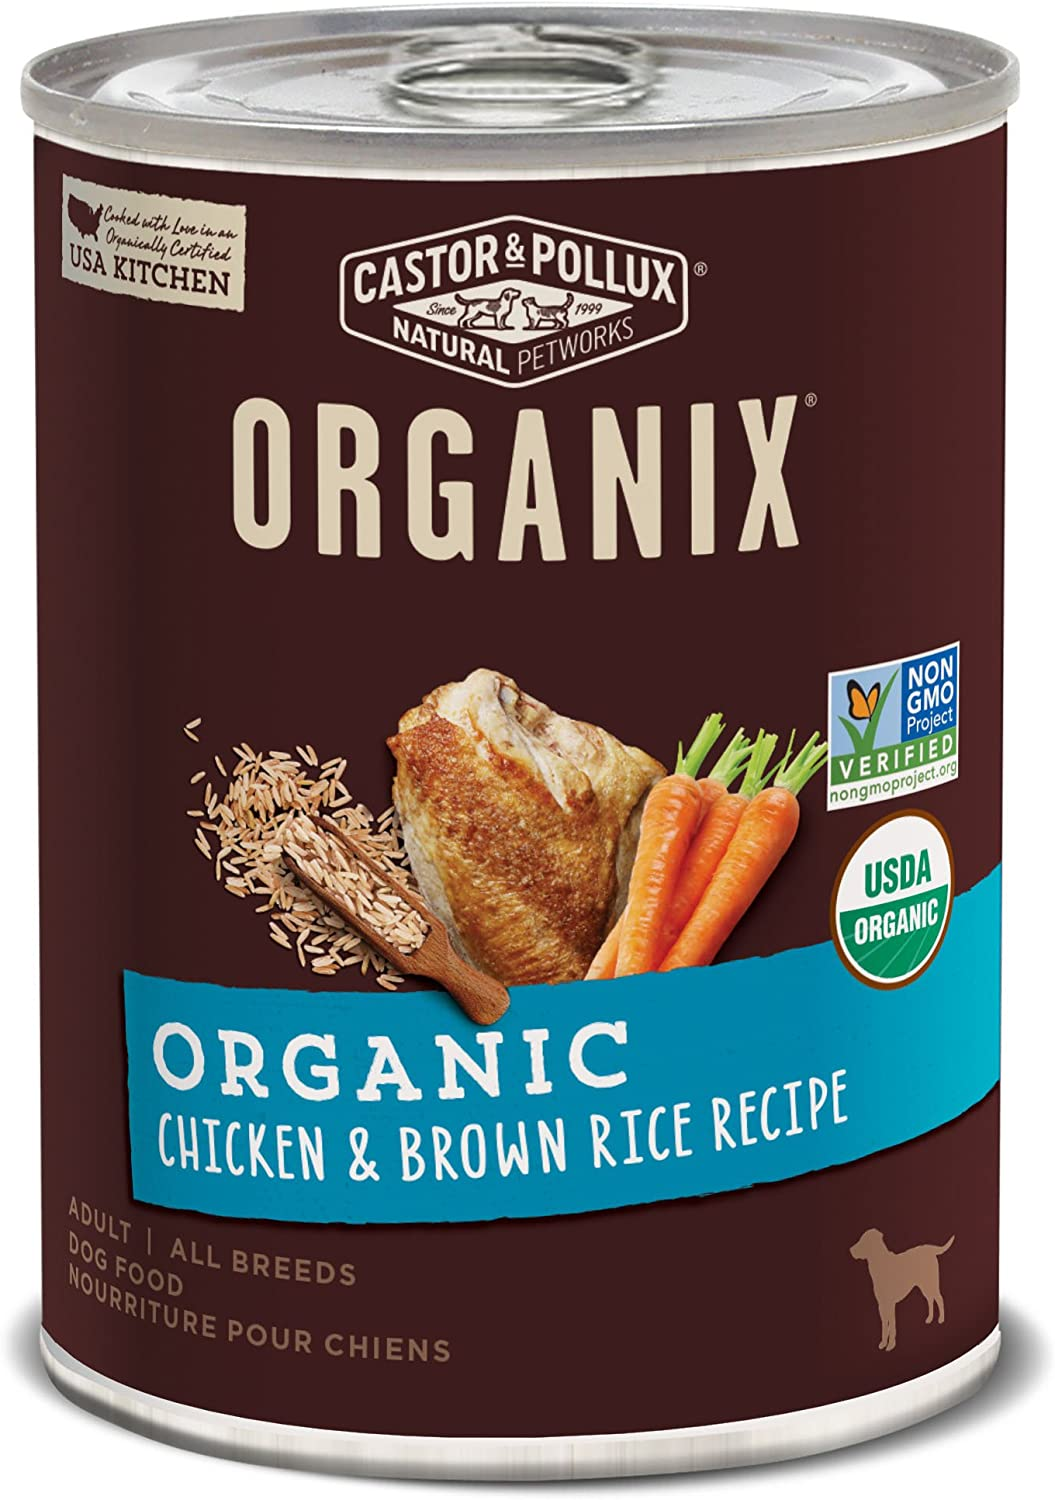 Castor & Pollux Organix Organic Chicken & Brown Rice Recipe Adult Canned Dog Food, (12) 12..7oz cans